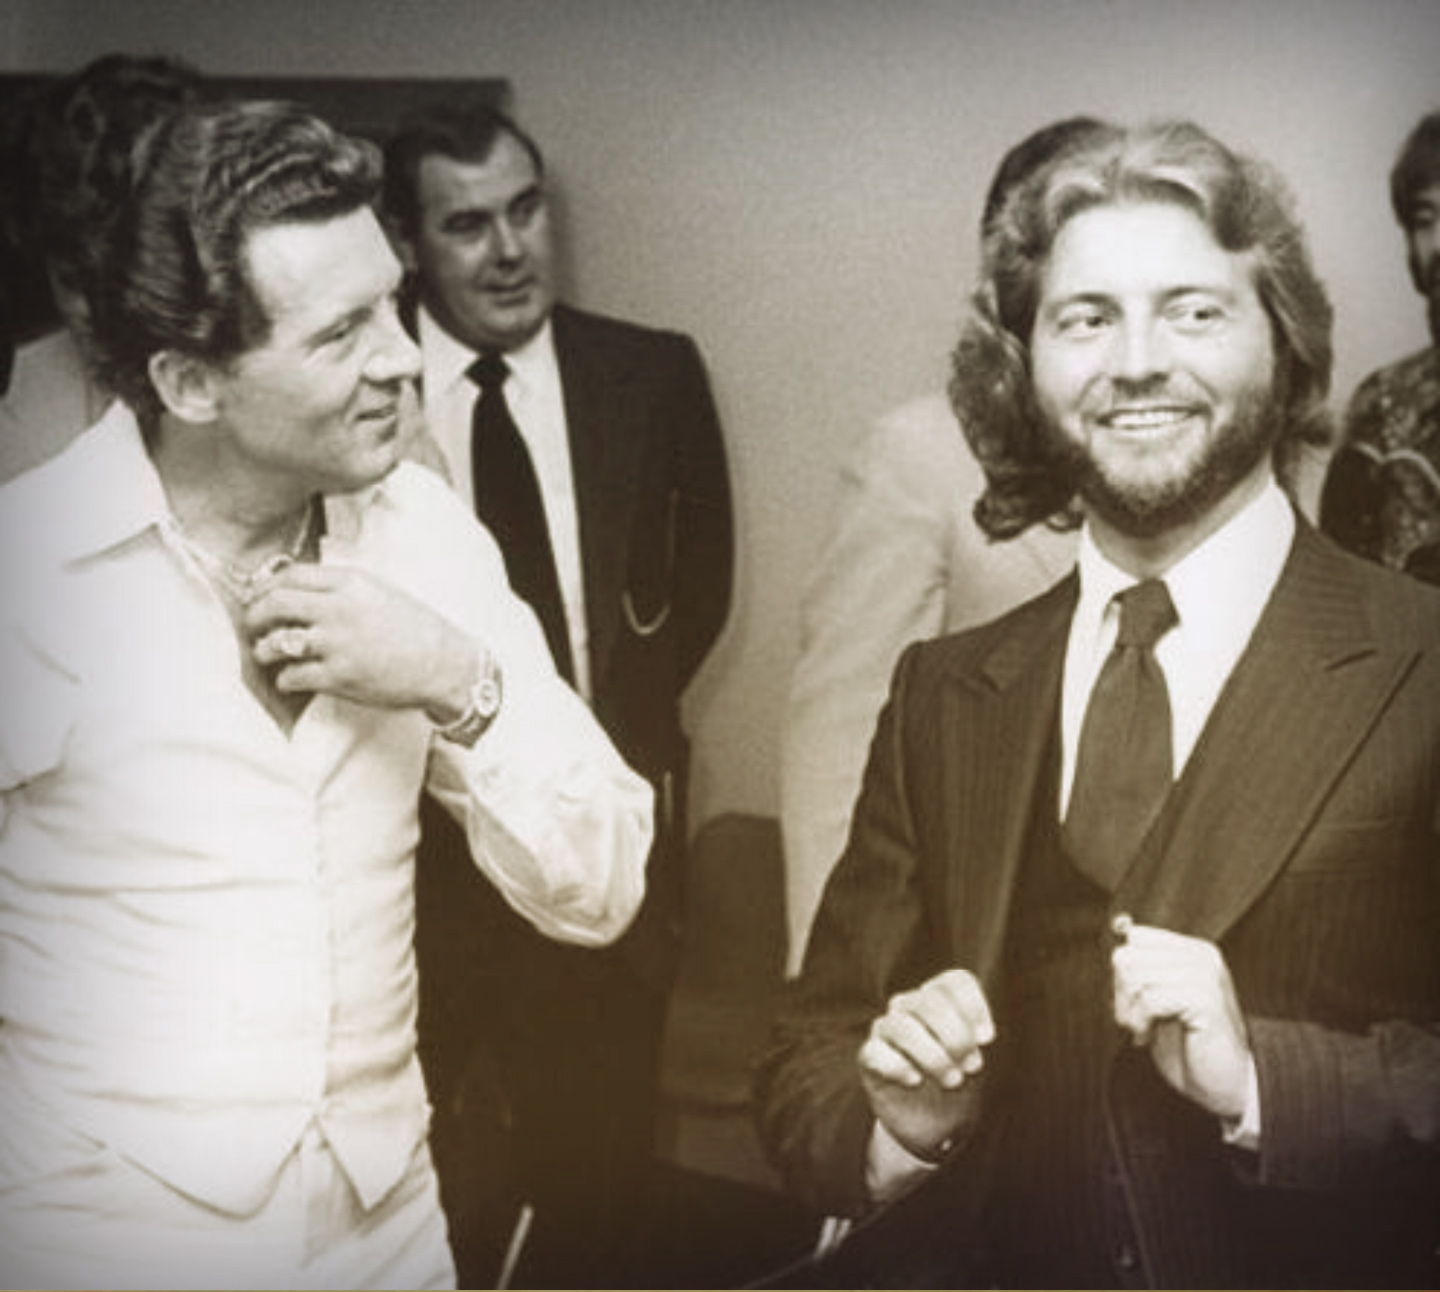 Knox and Jerry Lee Lewis